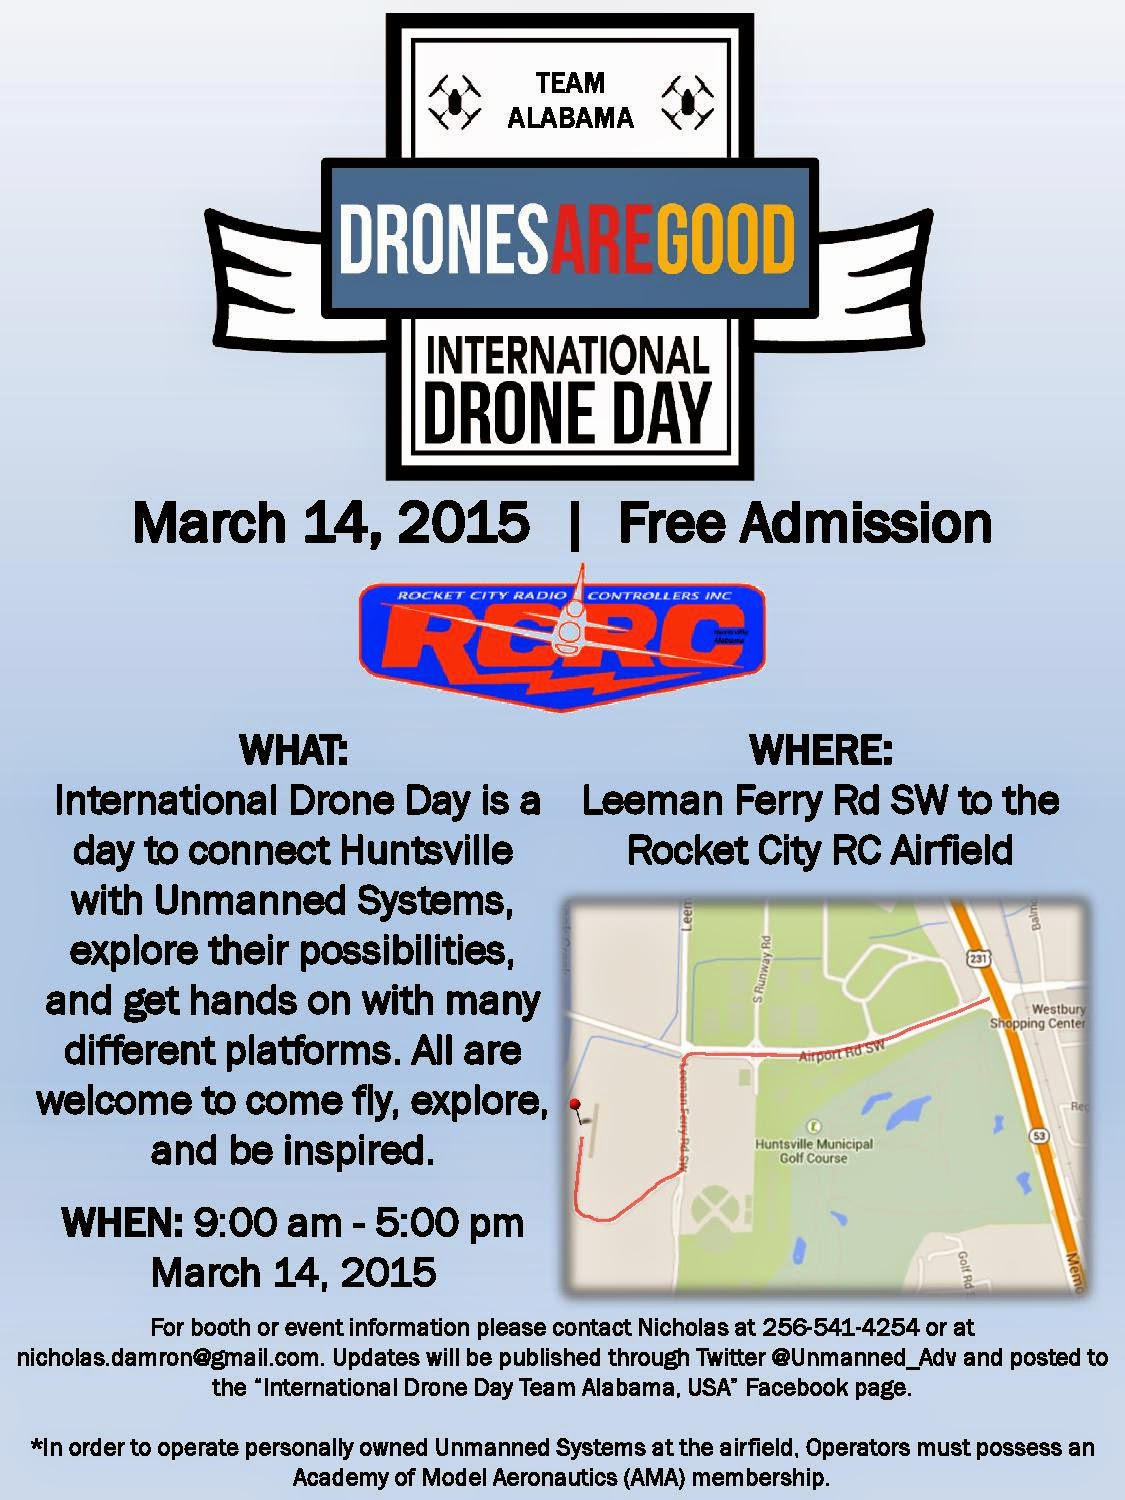 http://www.internationaldroneday.com/